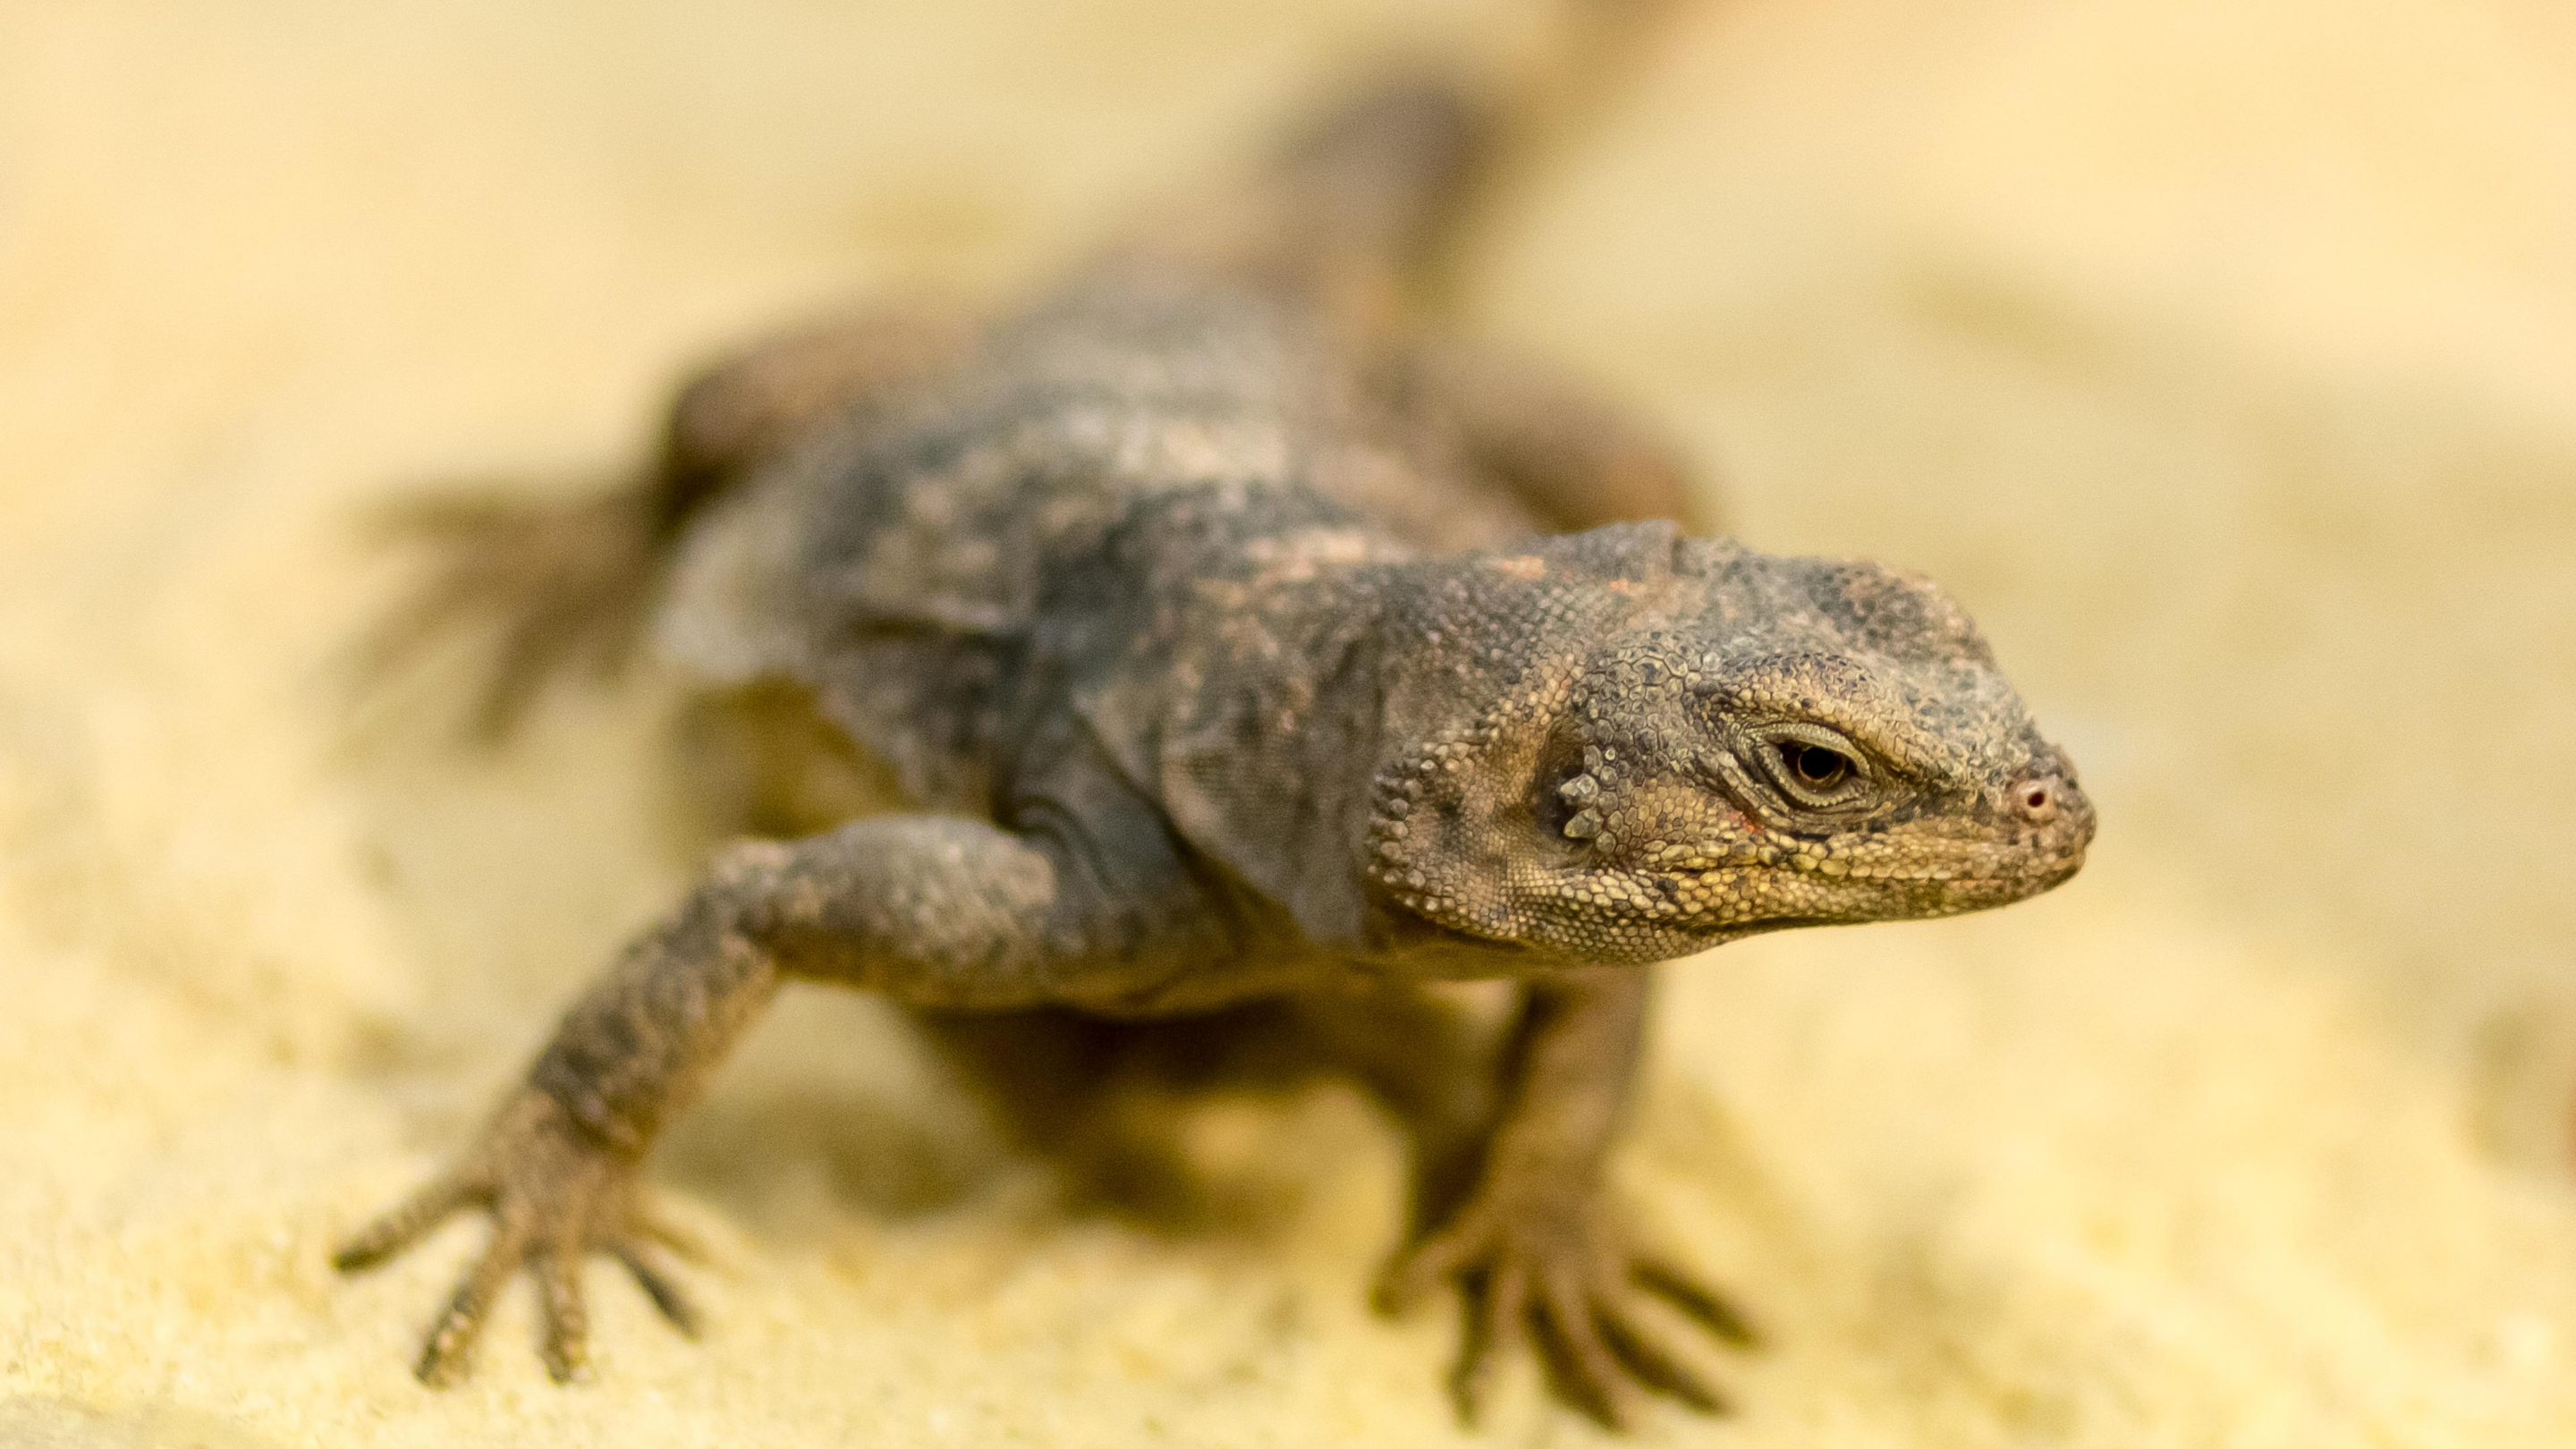 A chuckwalla angles her head towards the viewer